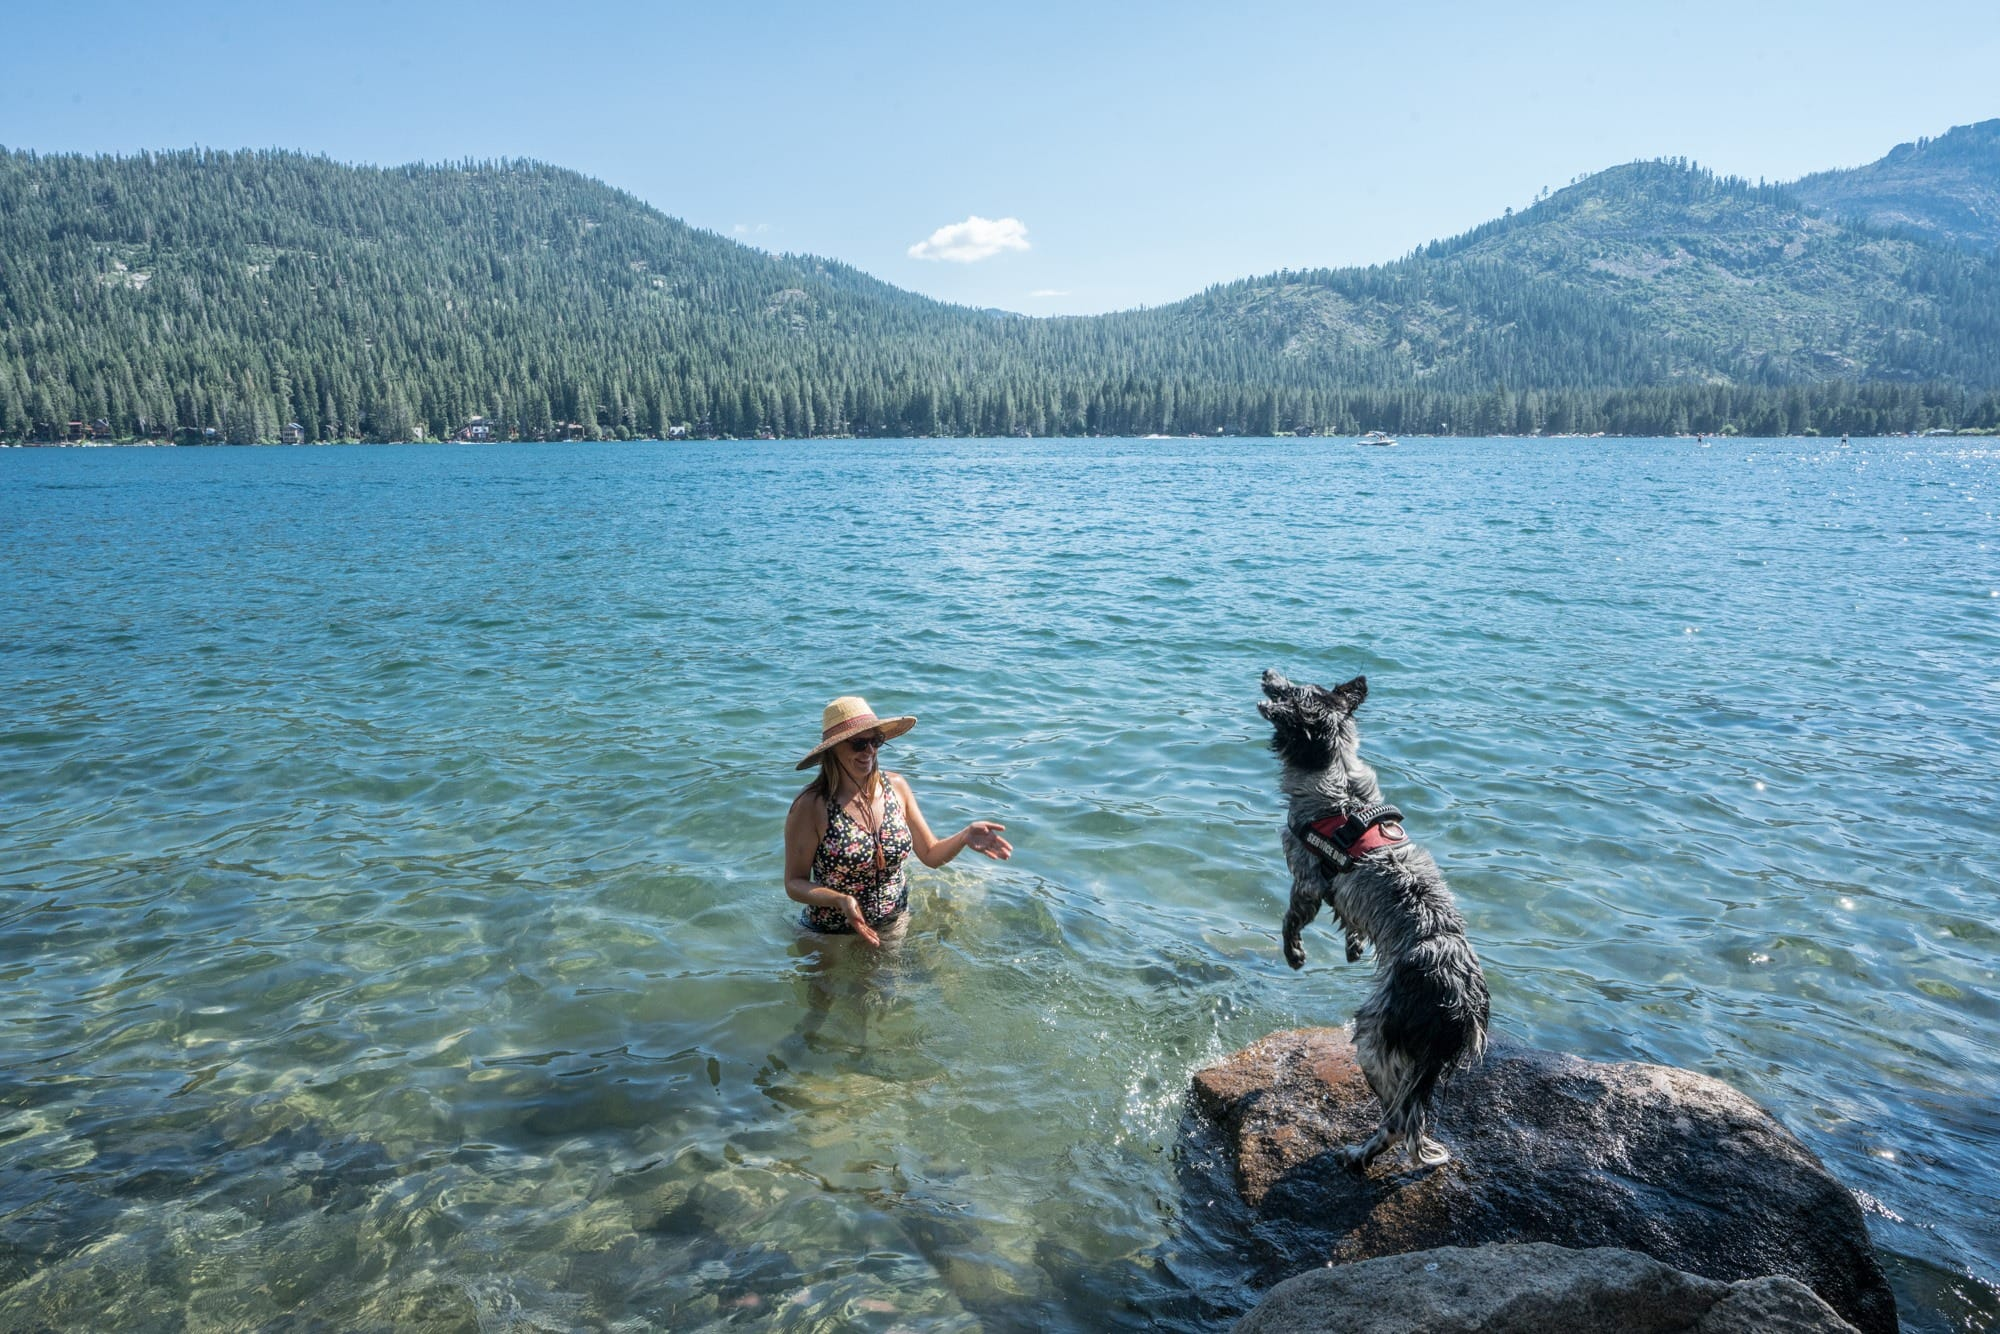 Donner Lake // Planning an adventure-packed vacation to Lake Tahoe? Here are 12 of the best things to do around Lake Tahoe for the outdoor enthusiast.